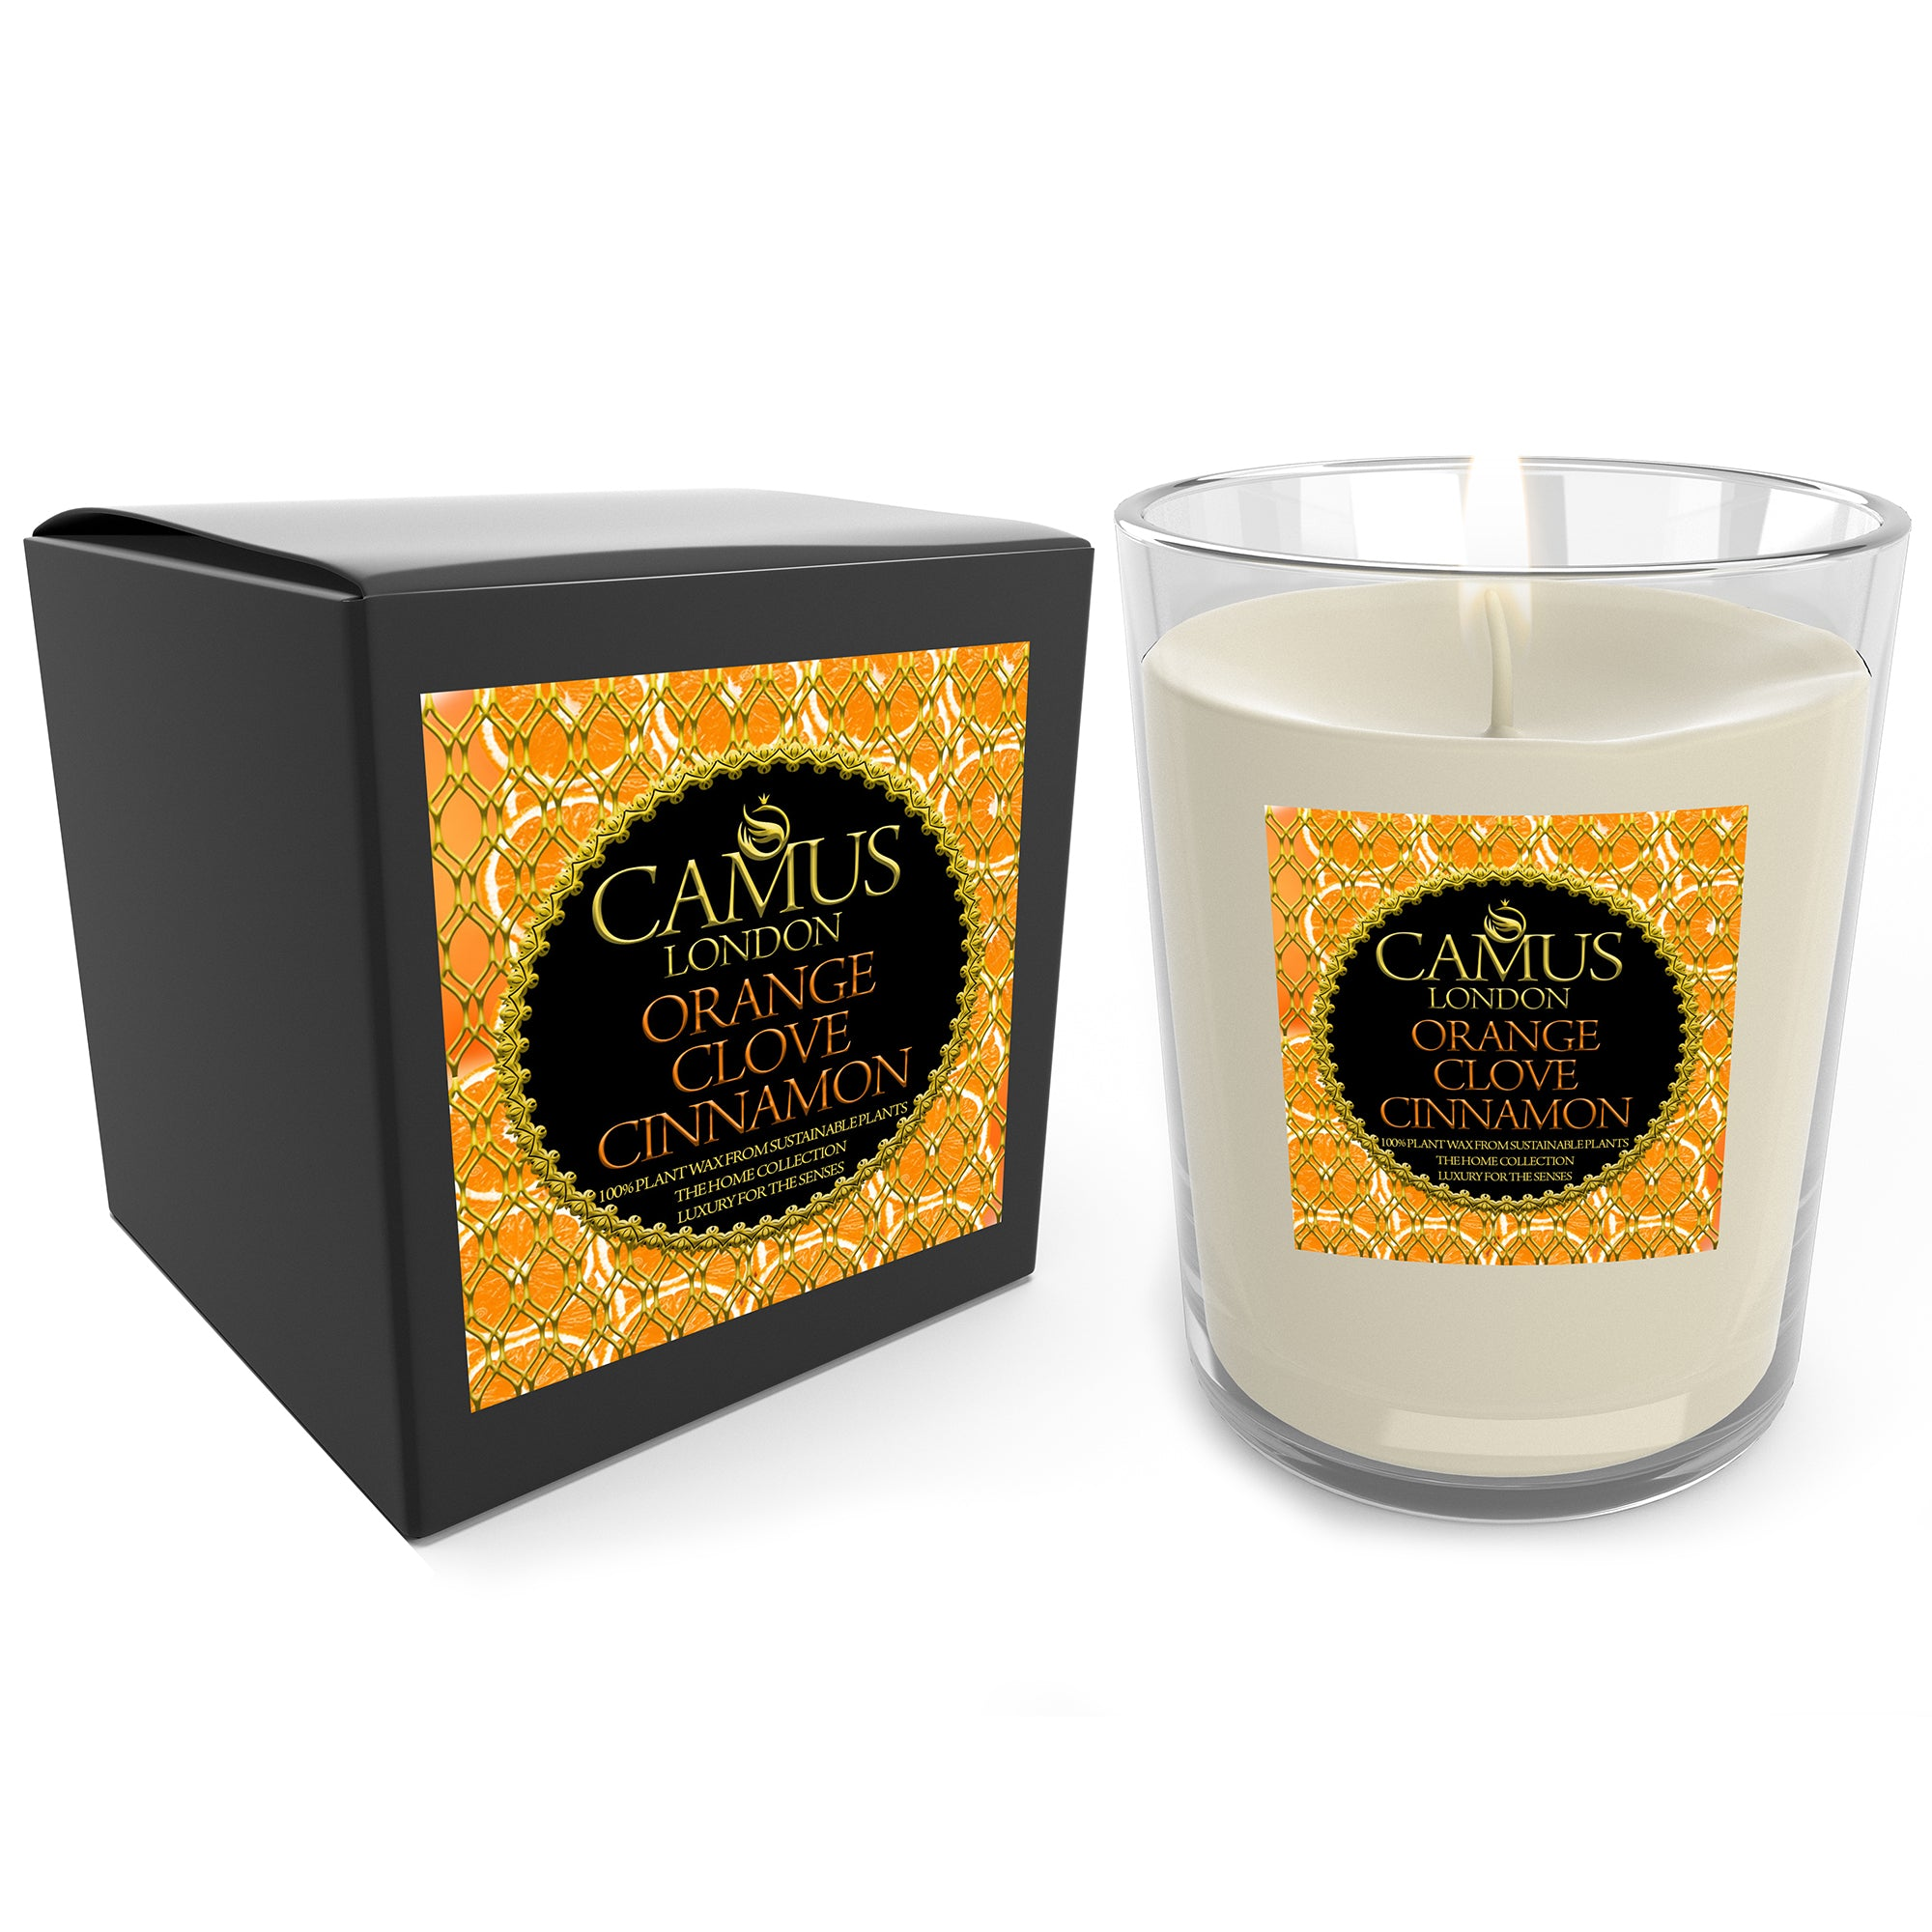 The Home Collection Essential Oil Orange & Clove & Cinnamon Luxury Candle 100% Plant Wax